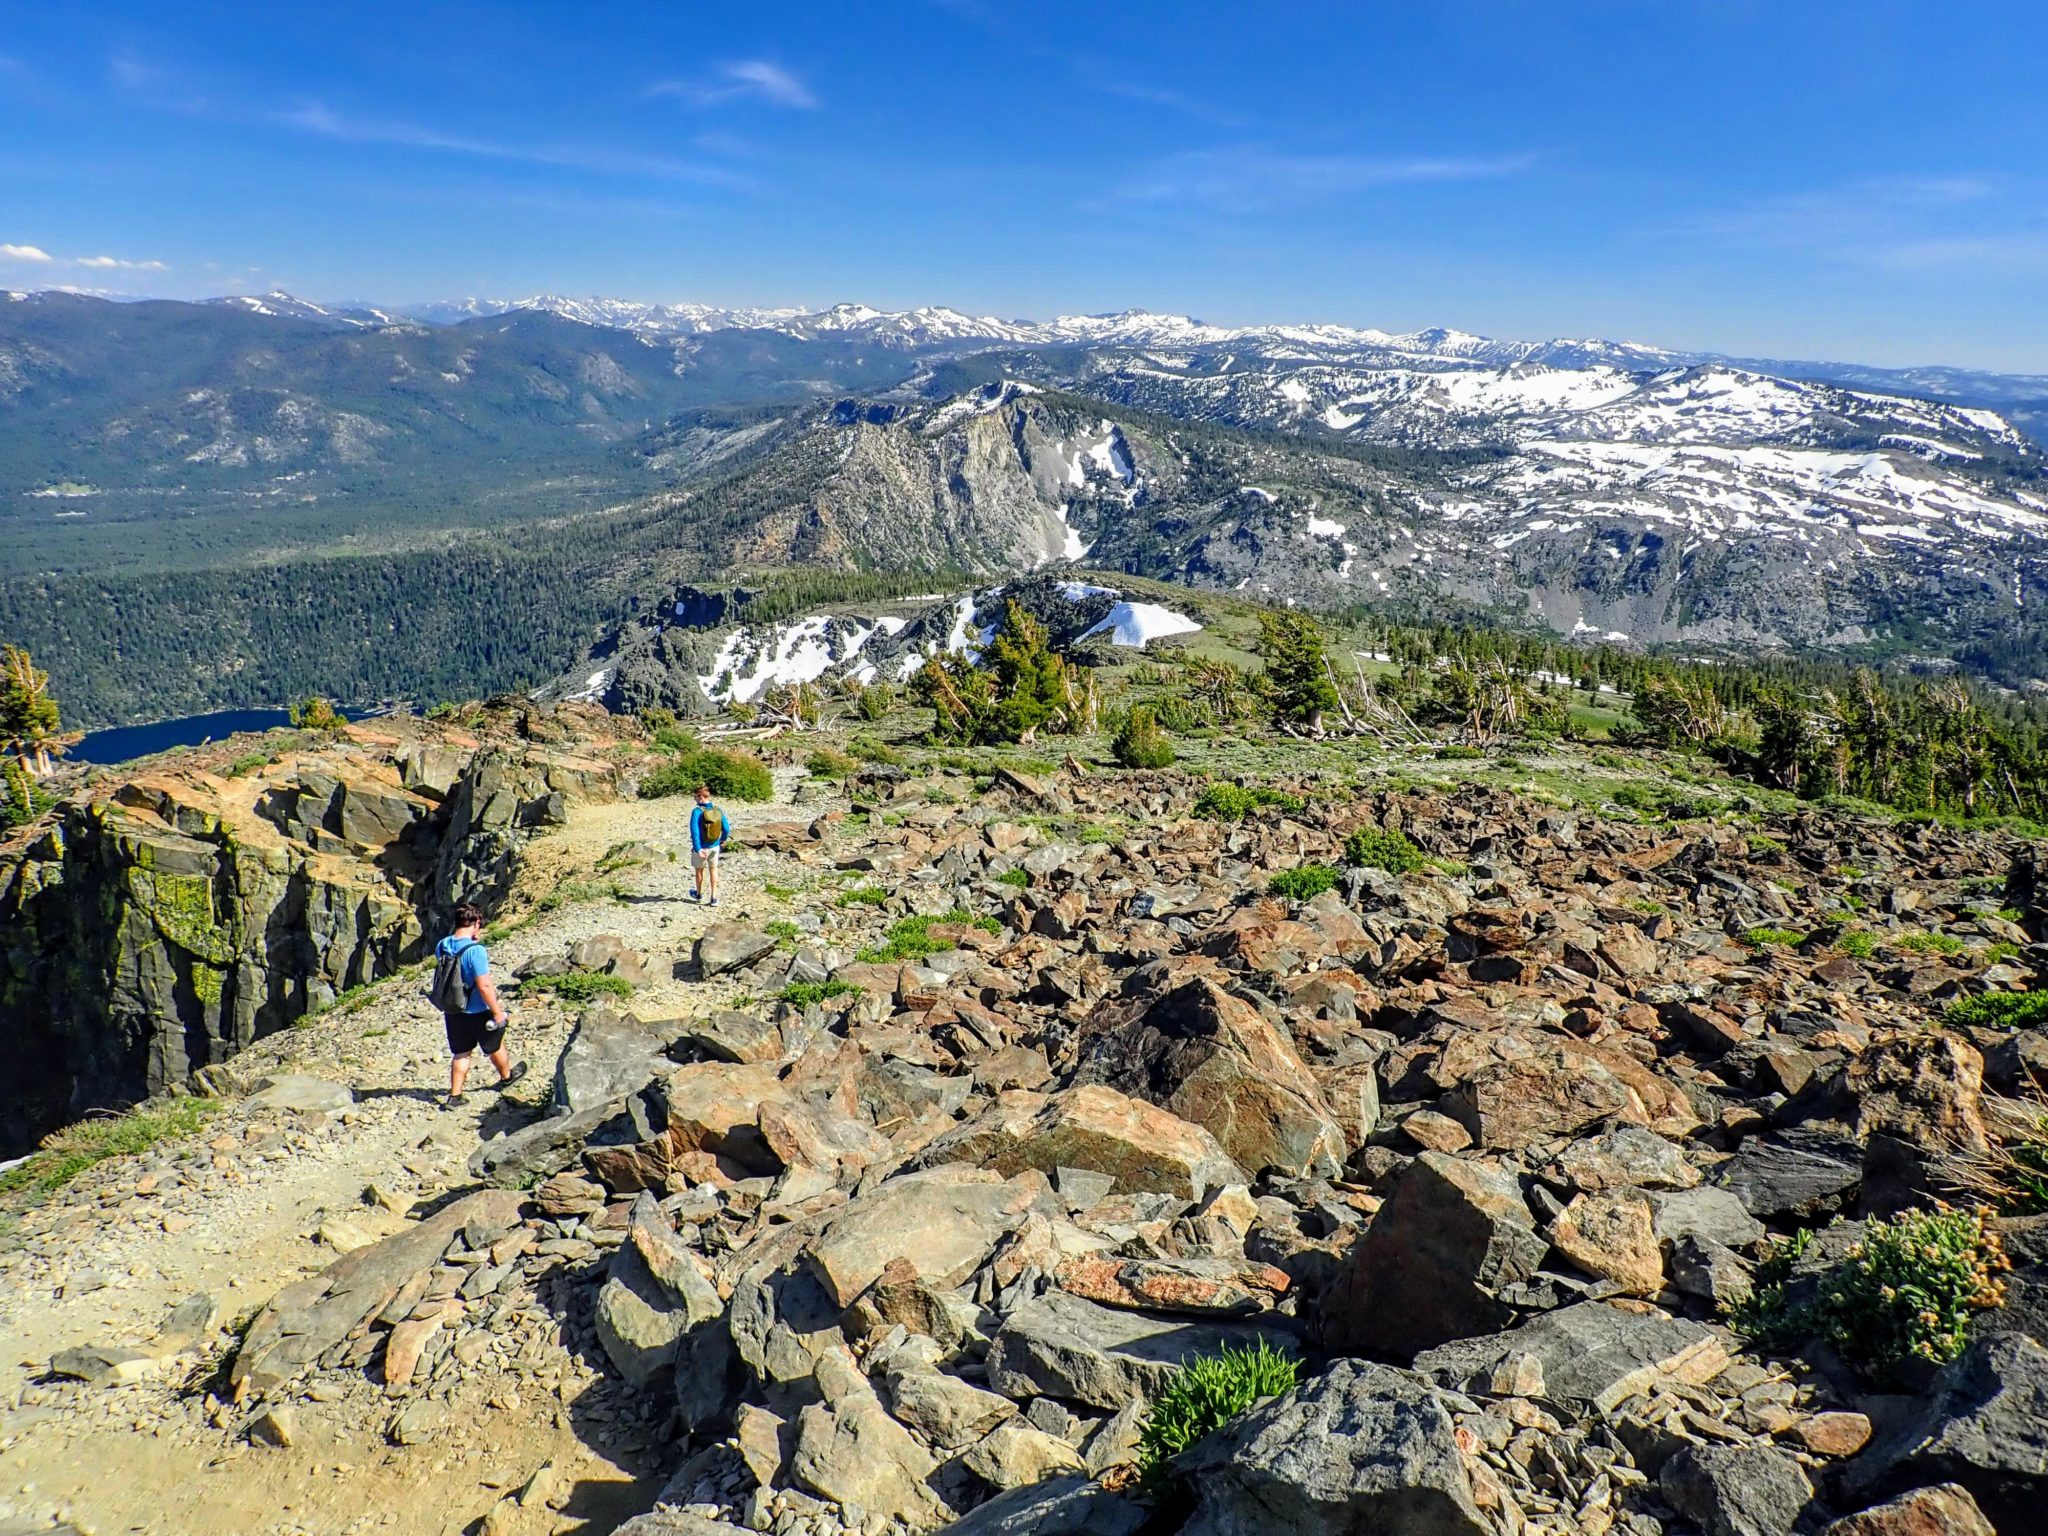 Two hikers descending rocky trail from Mt. Tallac, with Desolation Wilderness in background